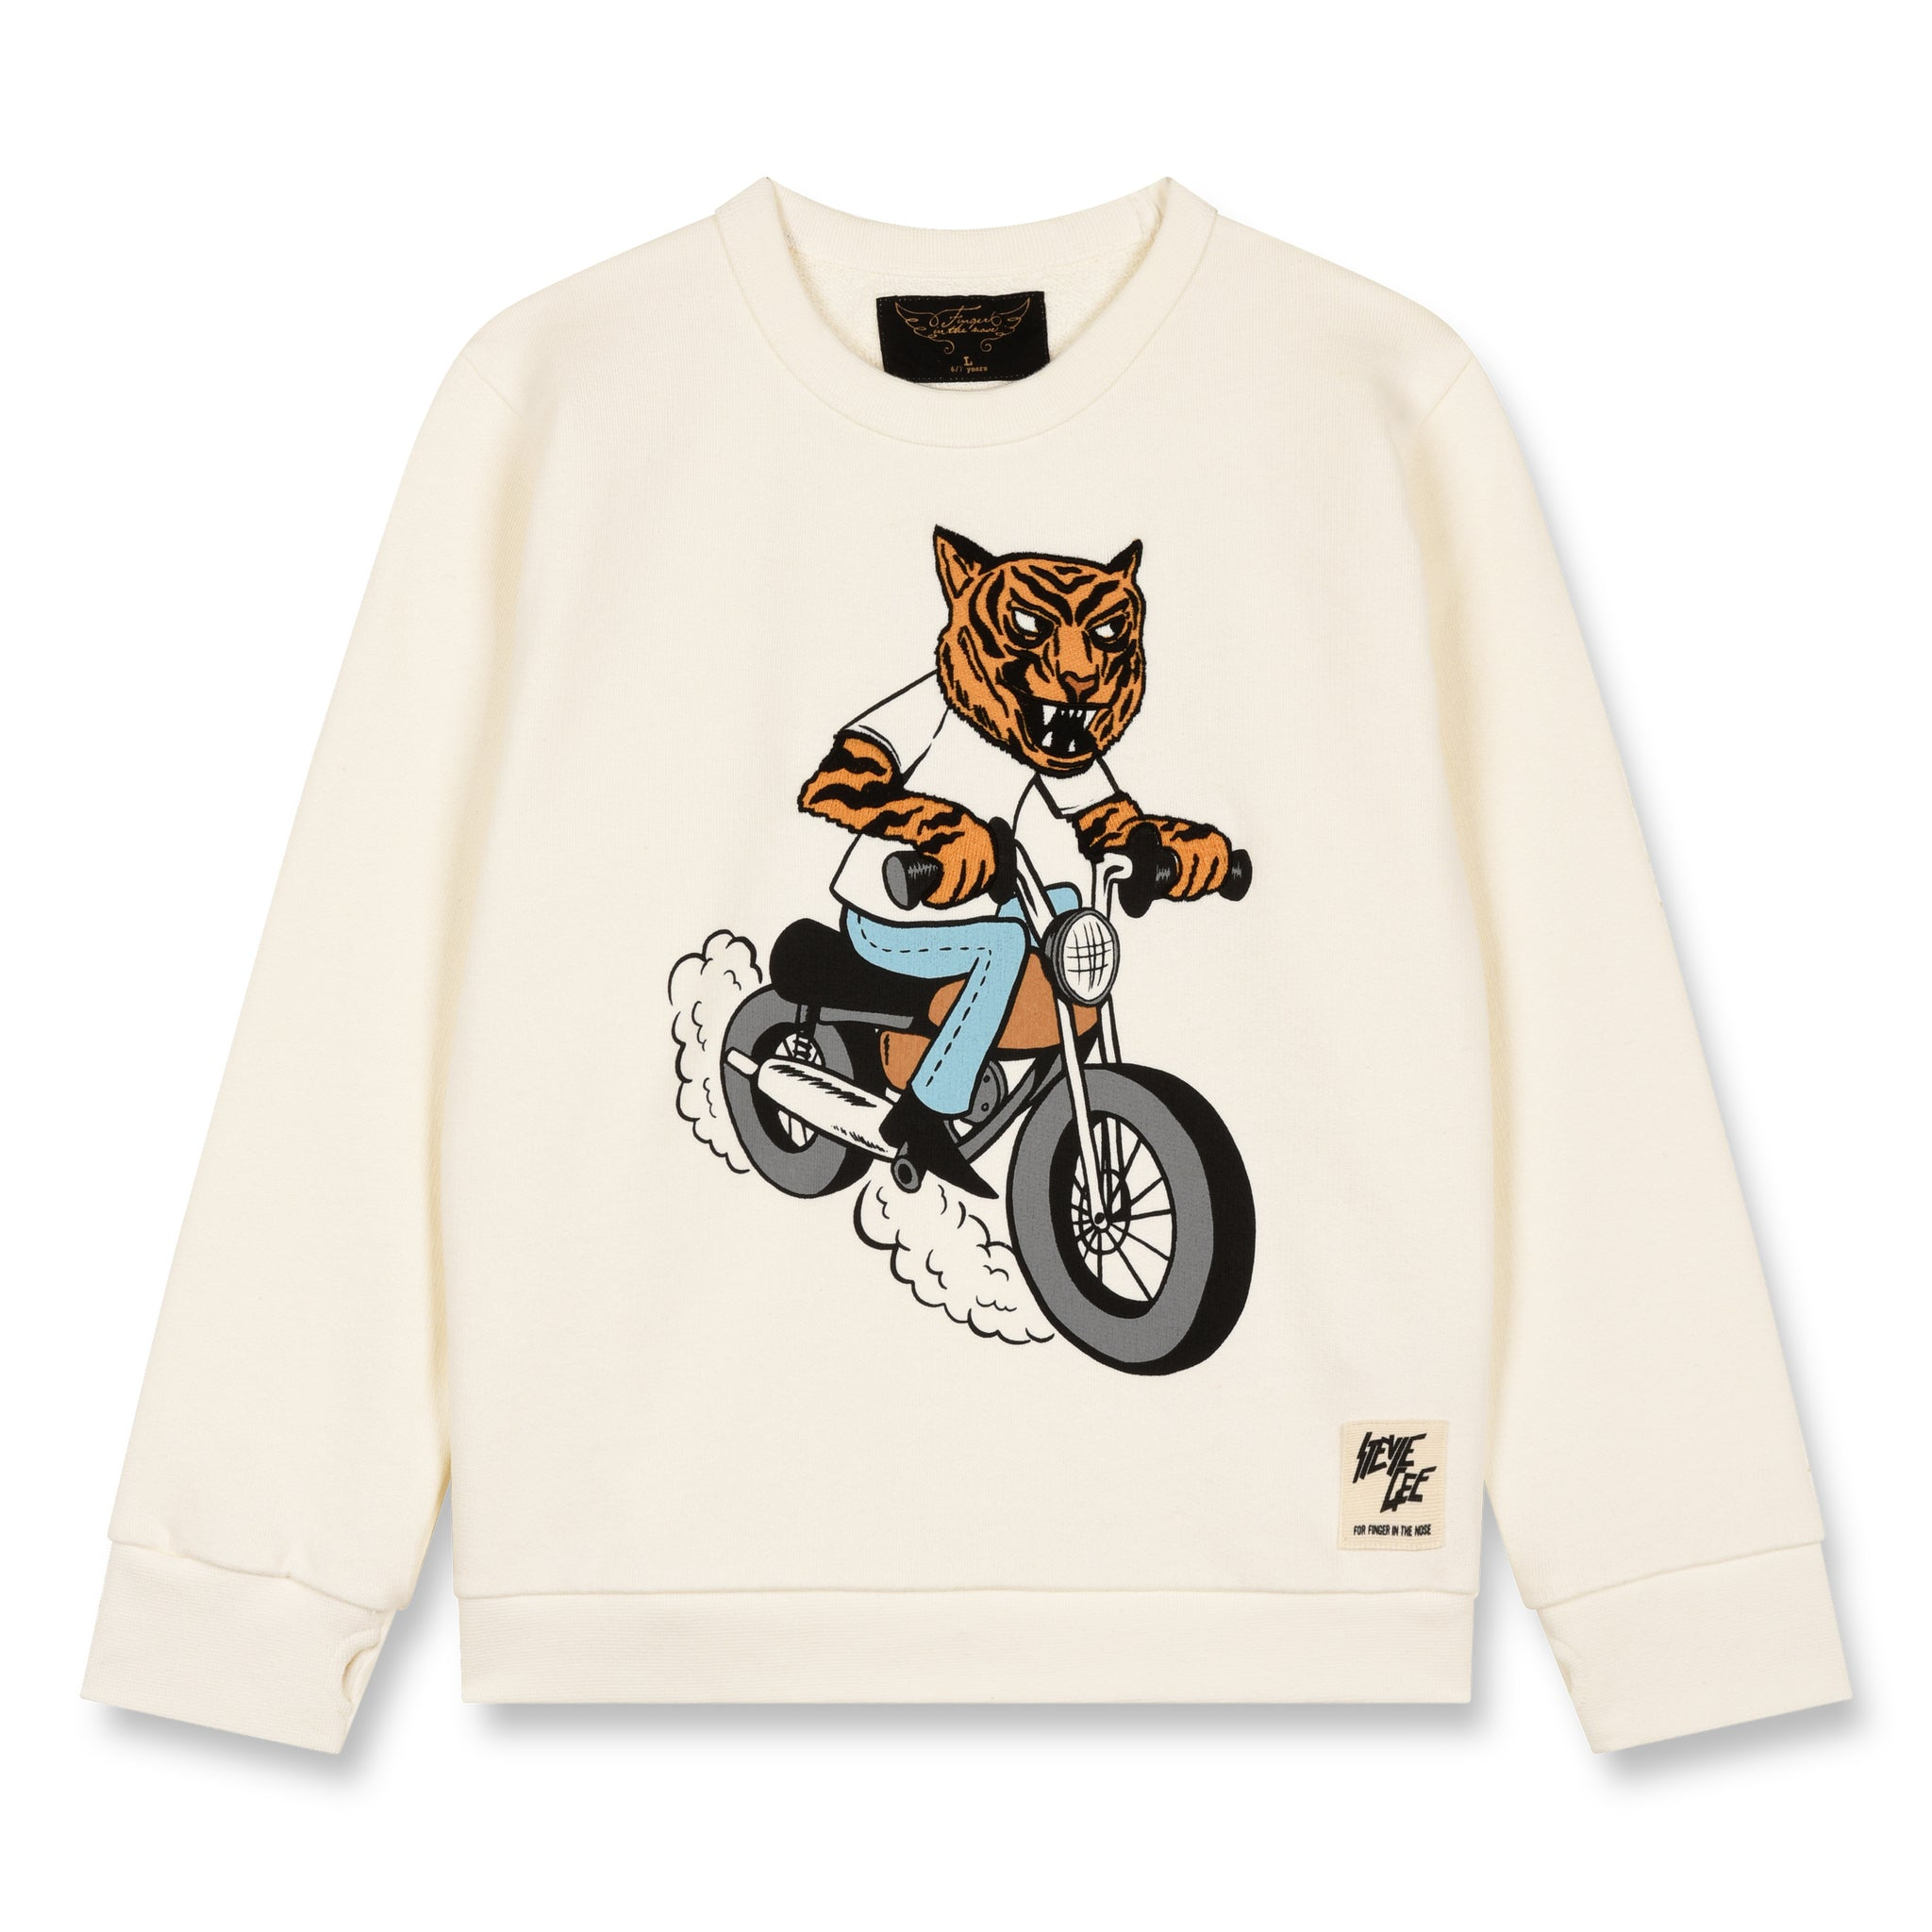 BRIAN Off White Moto Tiger - Crew Neck Sweatshirt 1